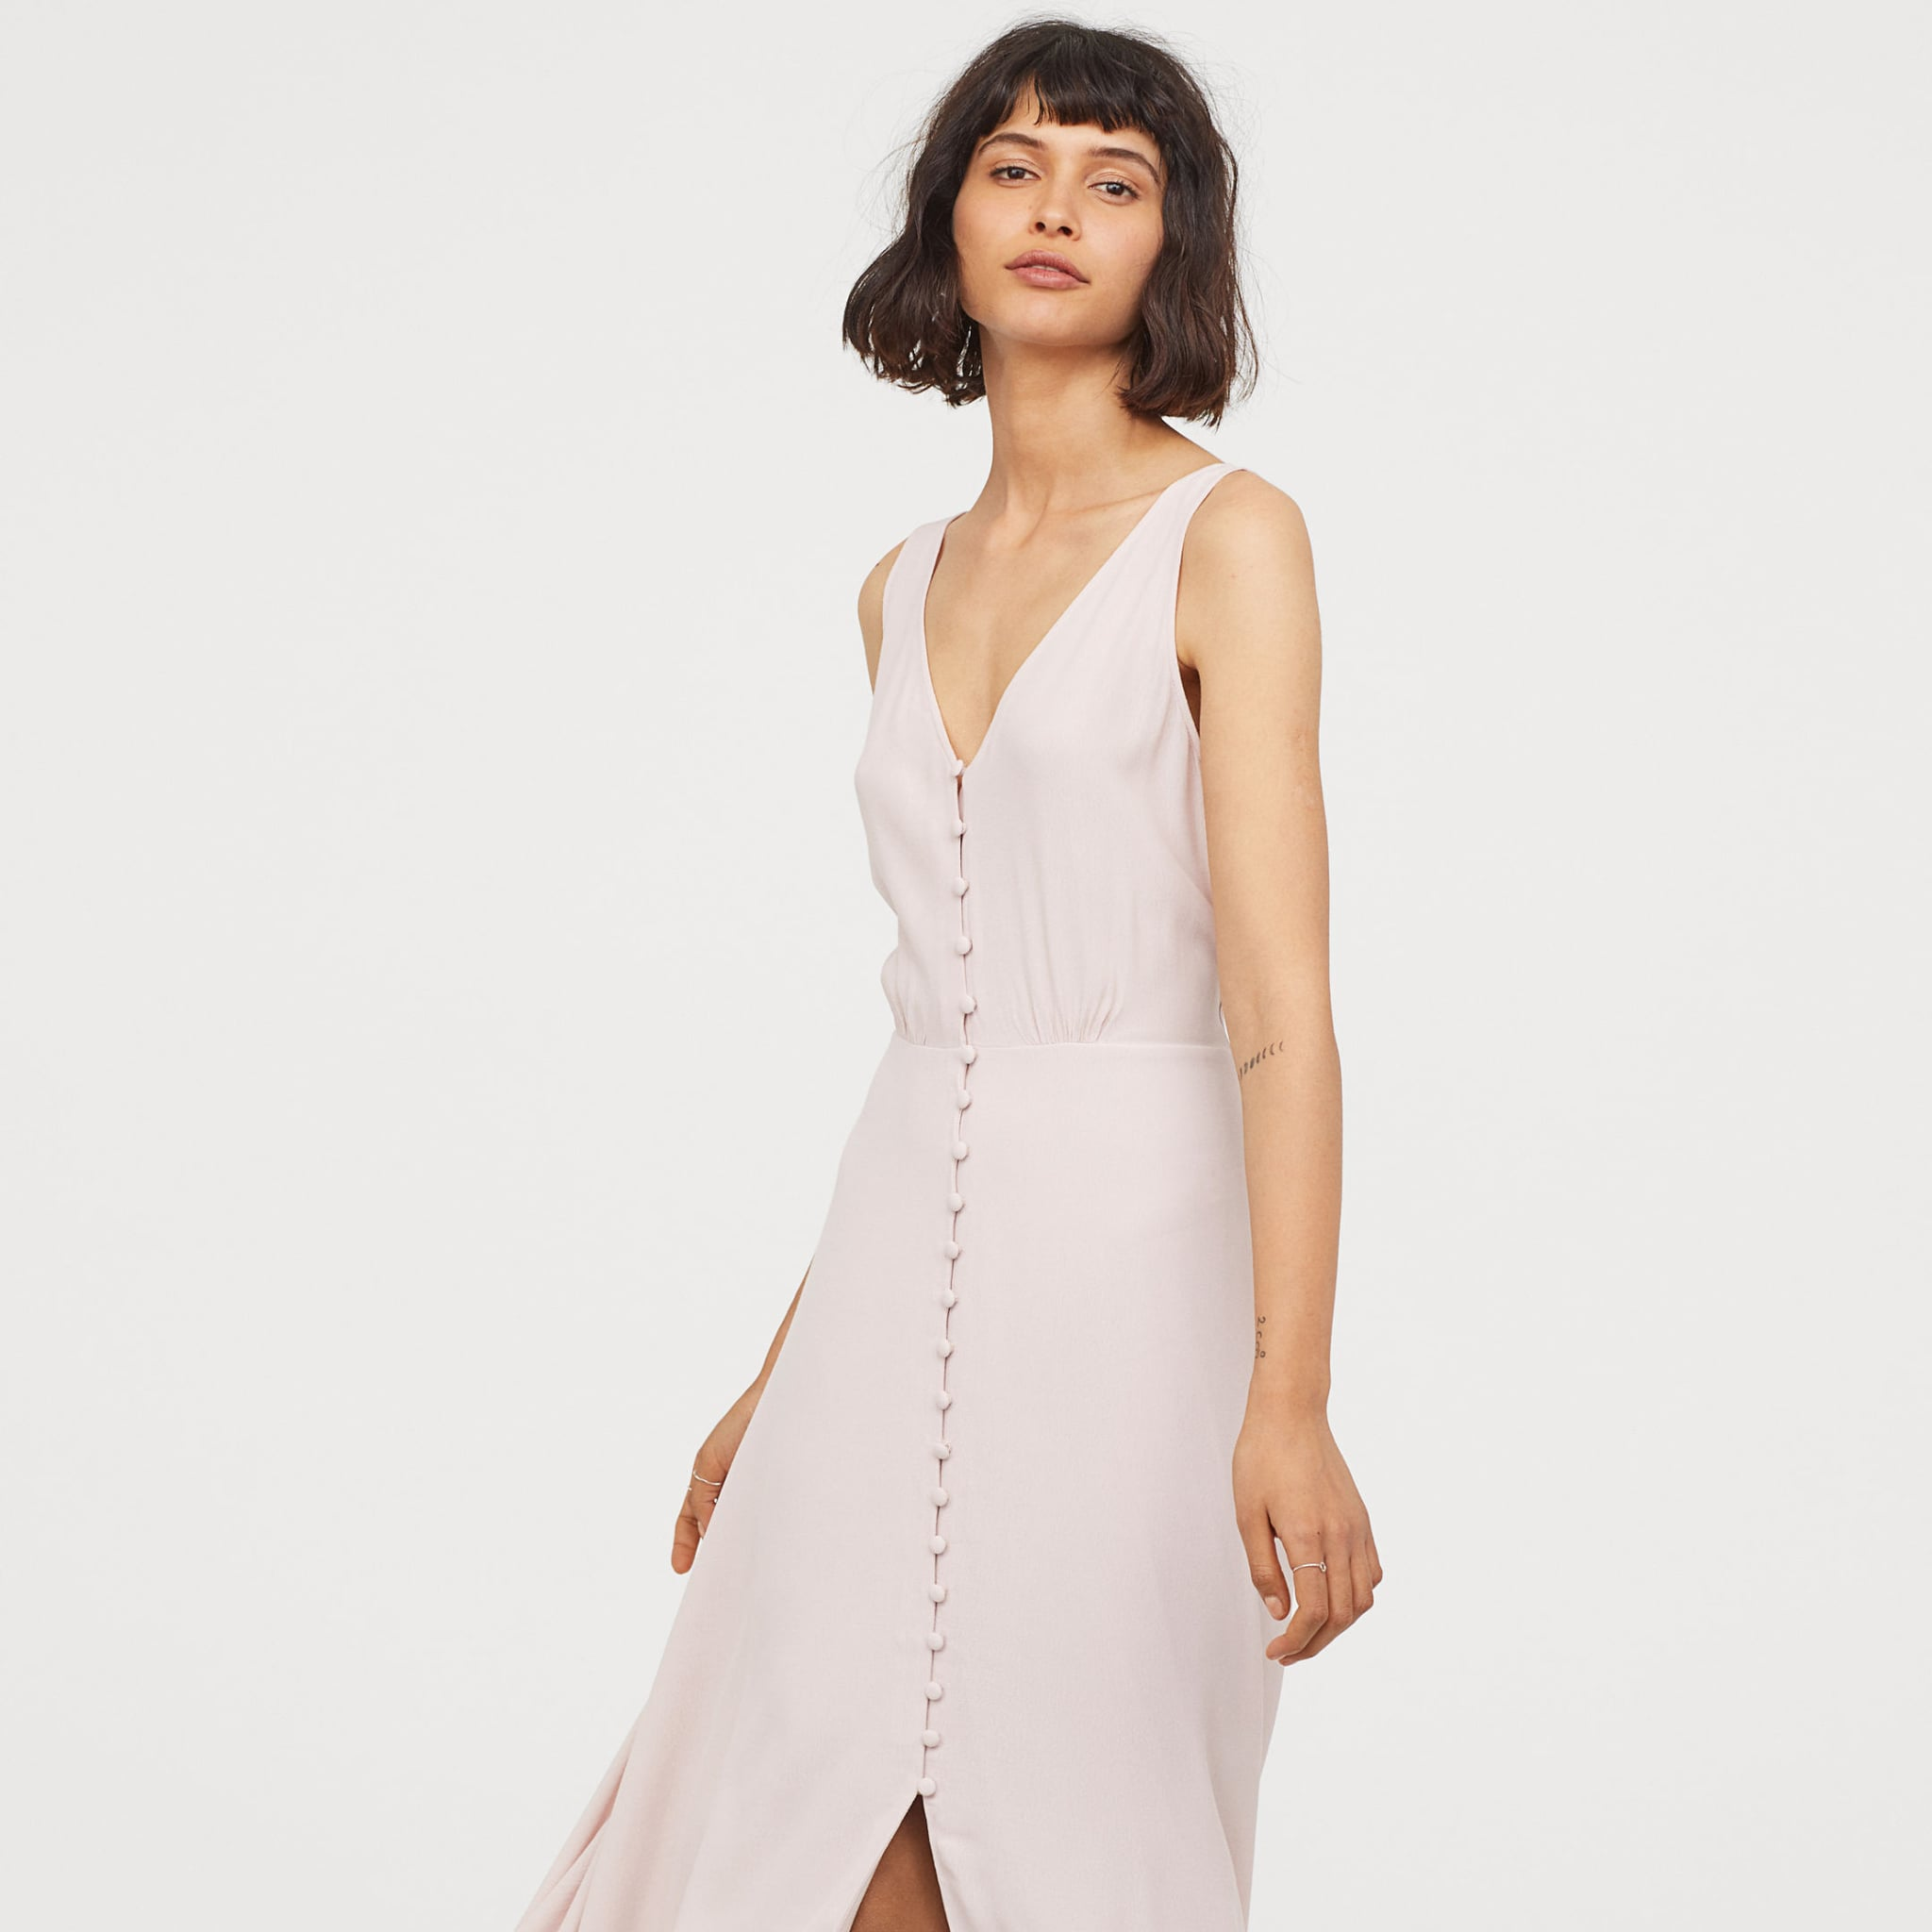 c818f06d9f479 H&M Wrap Dress | Best Summer Wedding Guest Dresses From H&M | POPSUGAR  Fashion Photo 11